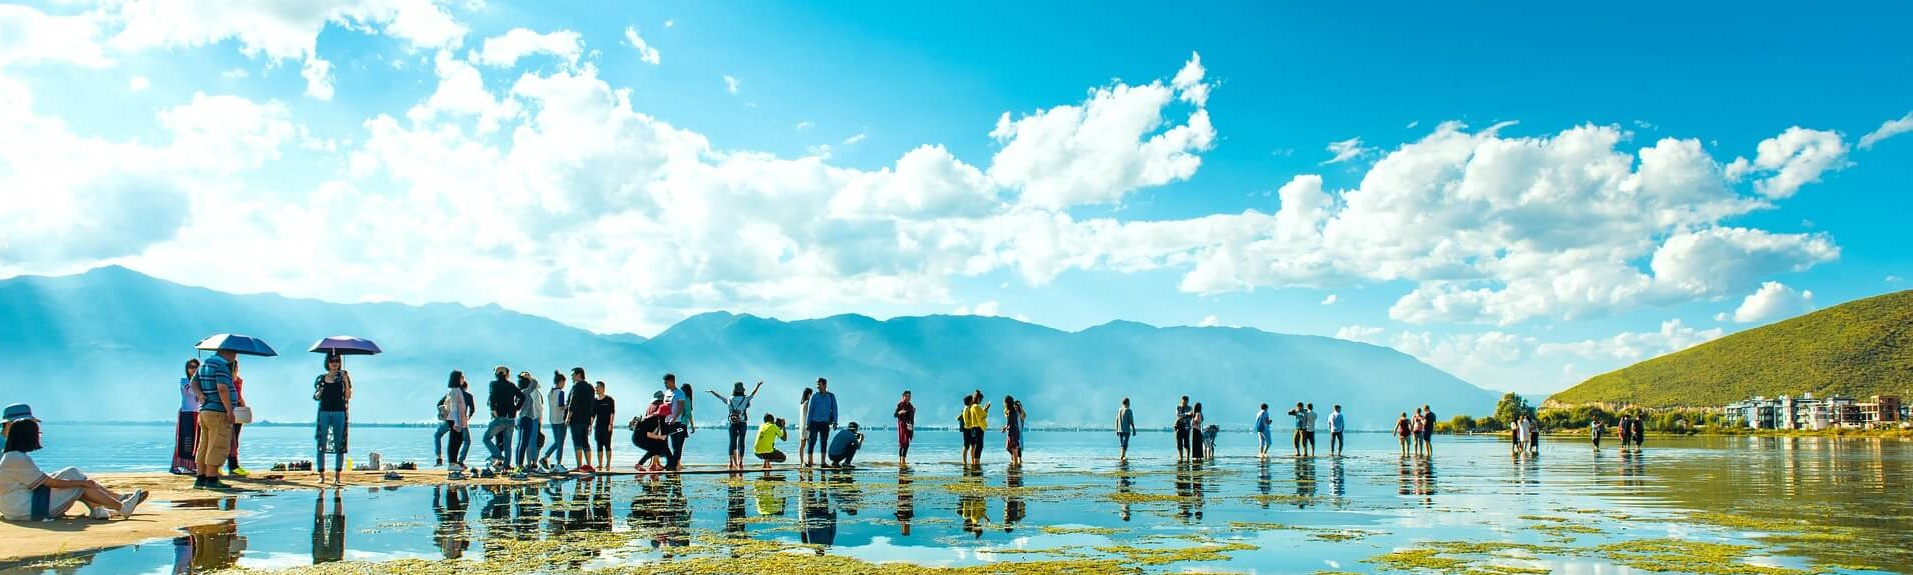 The Spirit of Adventure - Ancient Spirit of Yunnan Tour